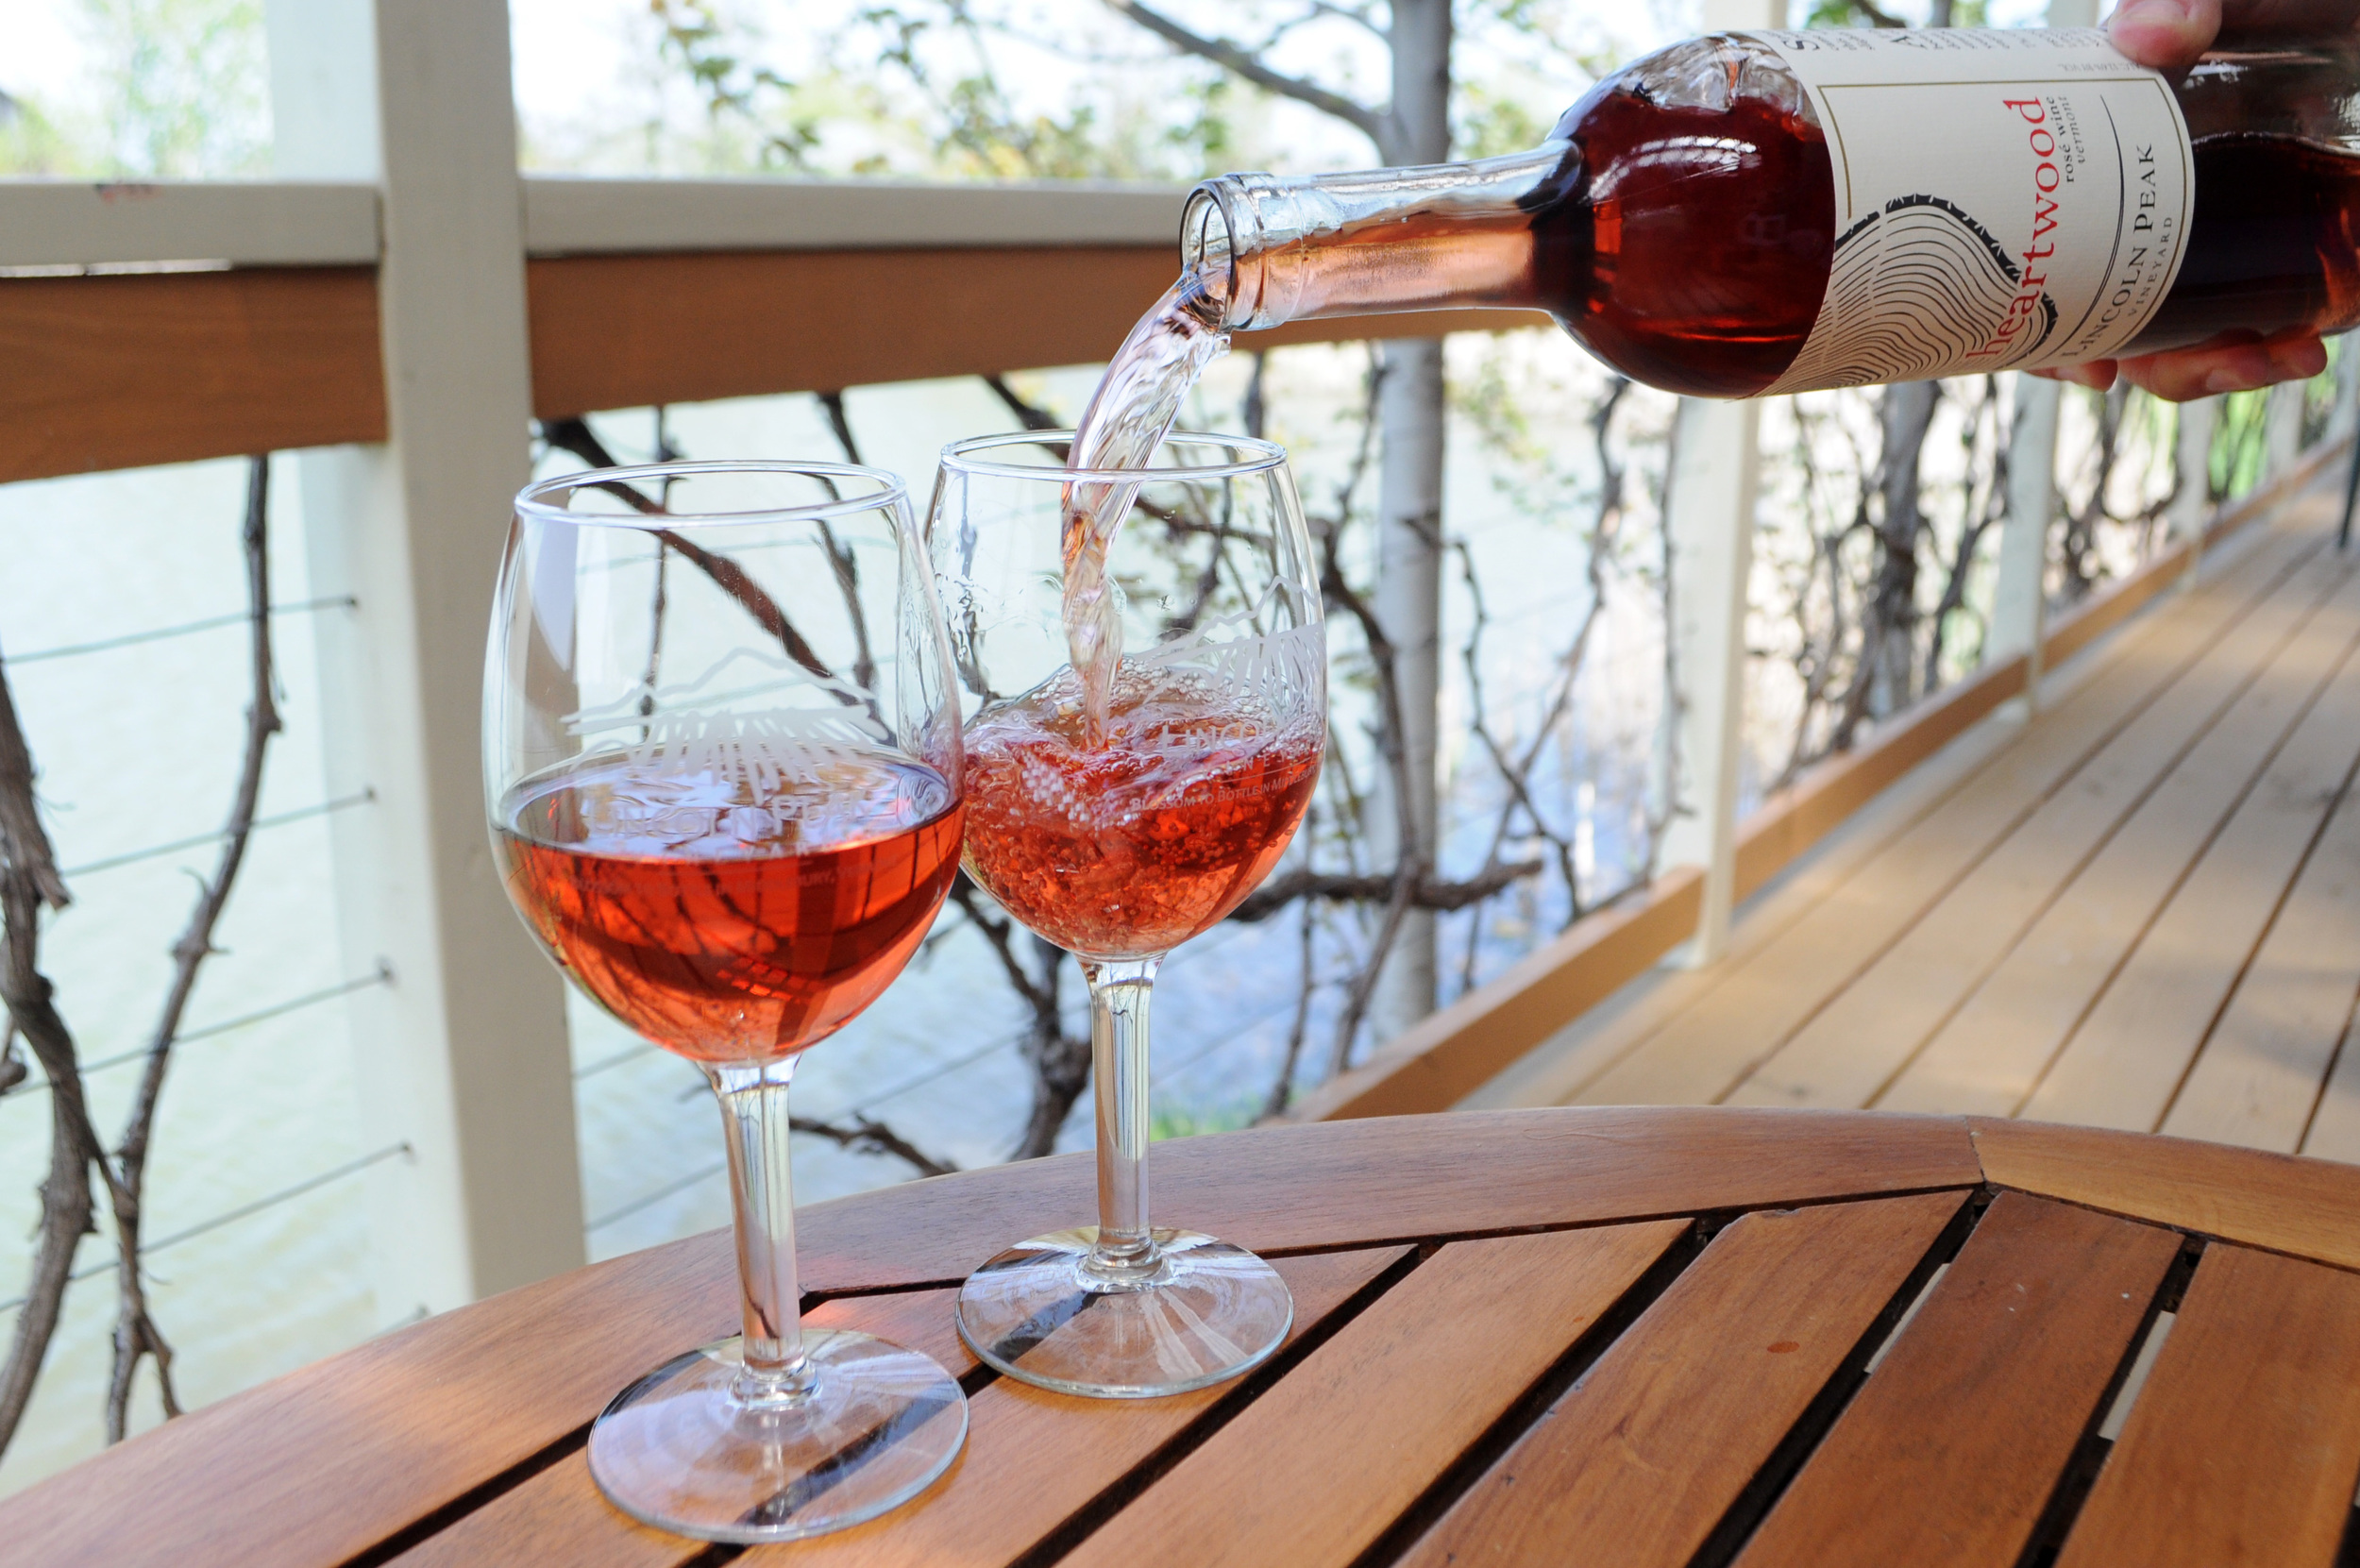 Rosé - not as sweet as you might think